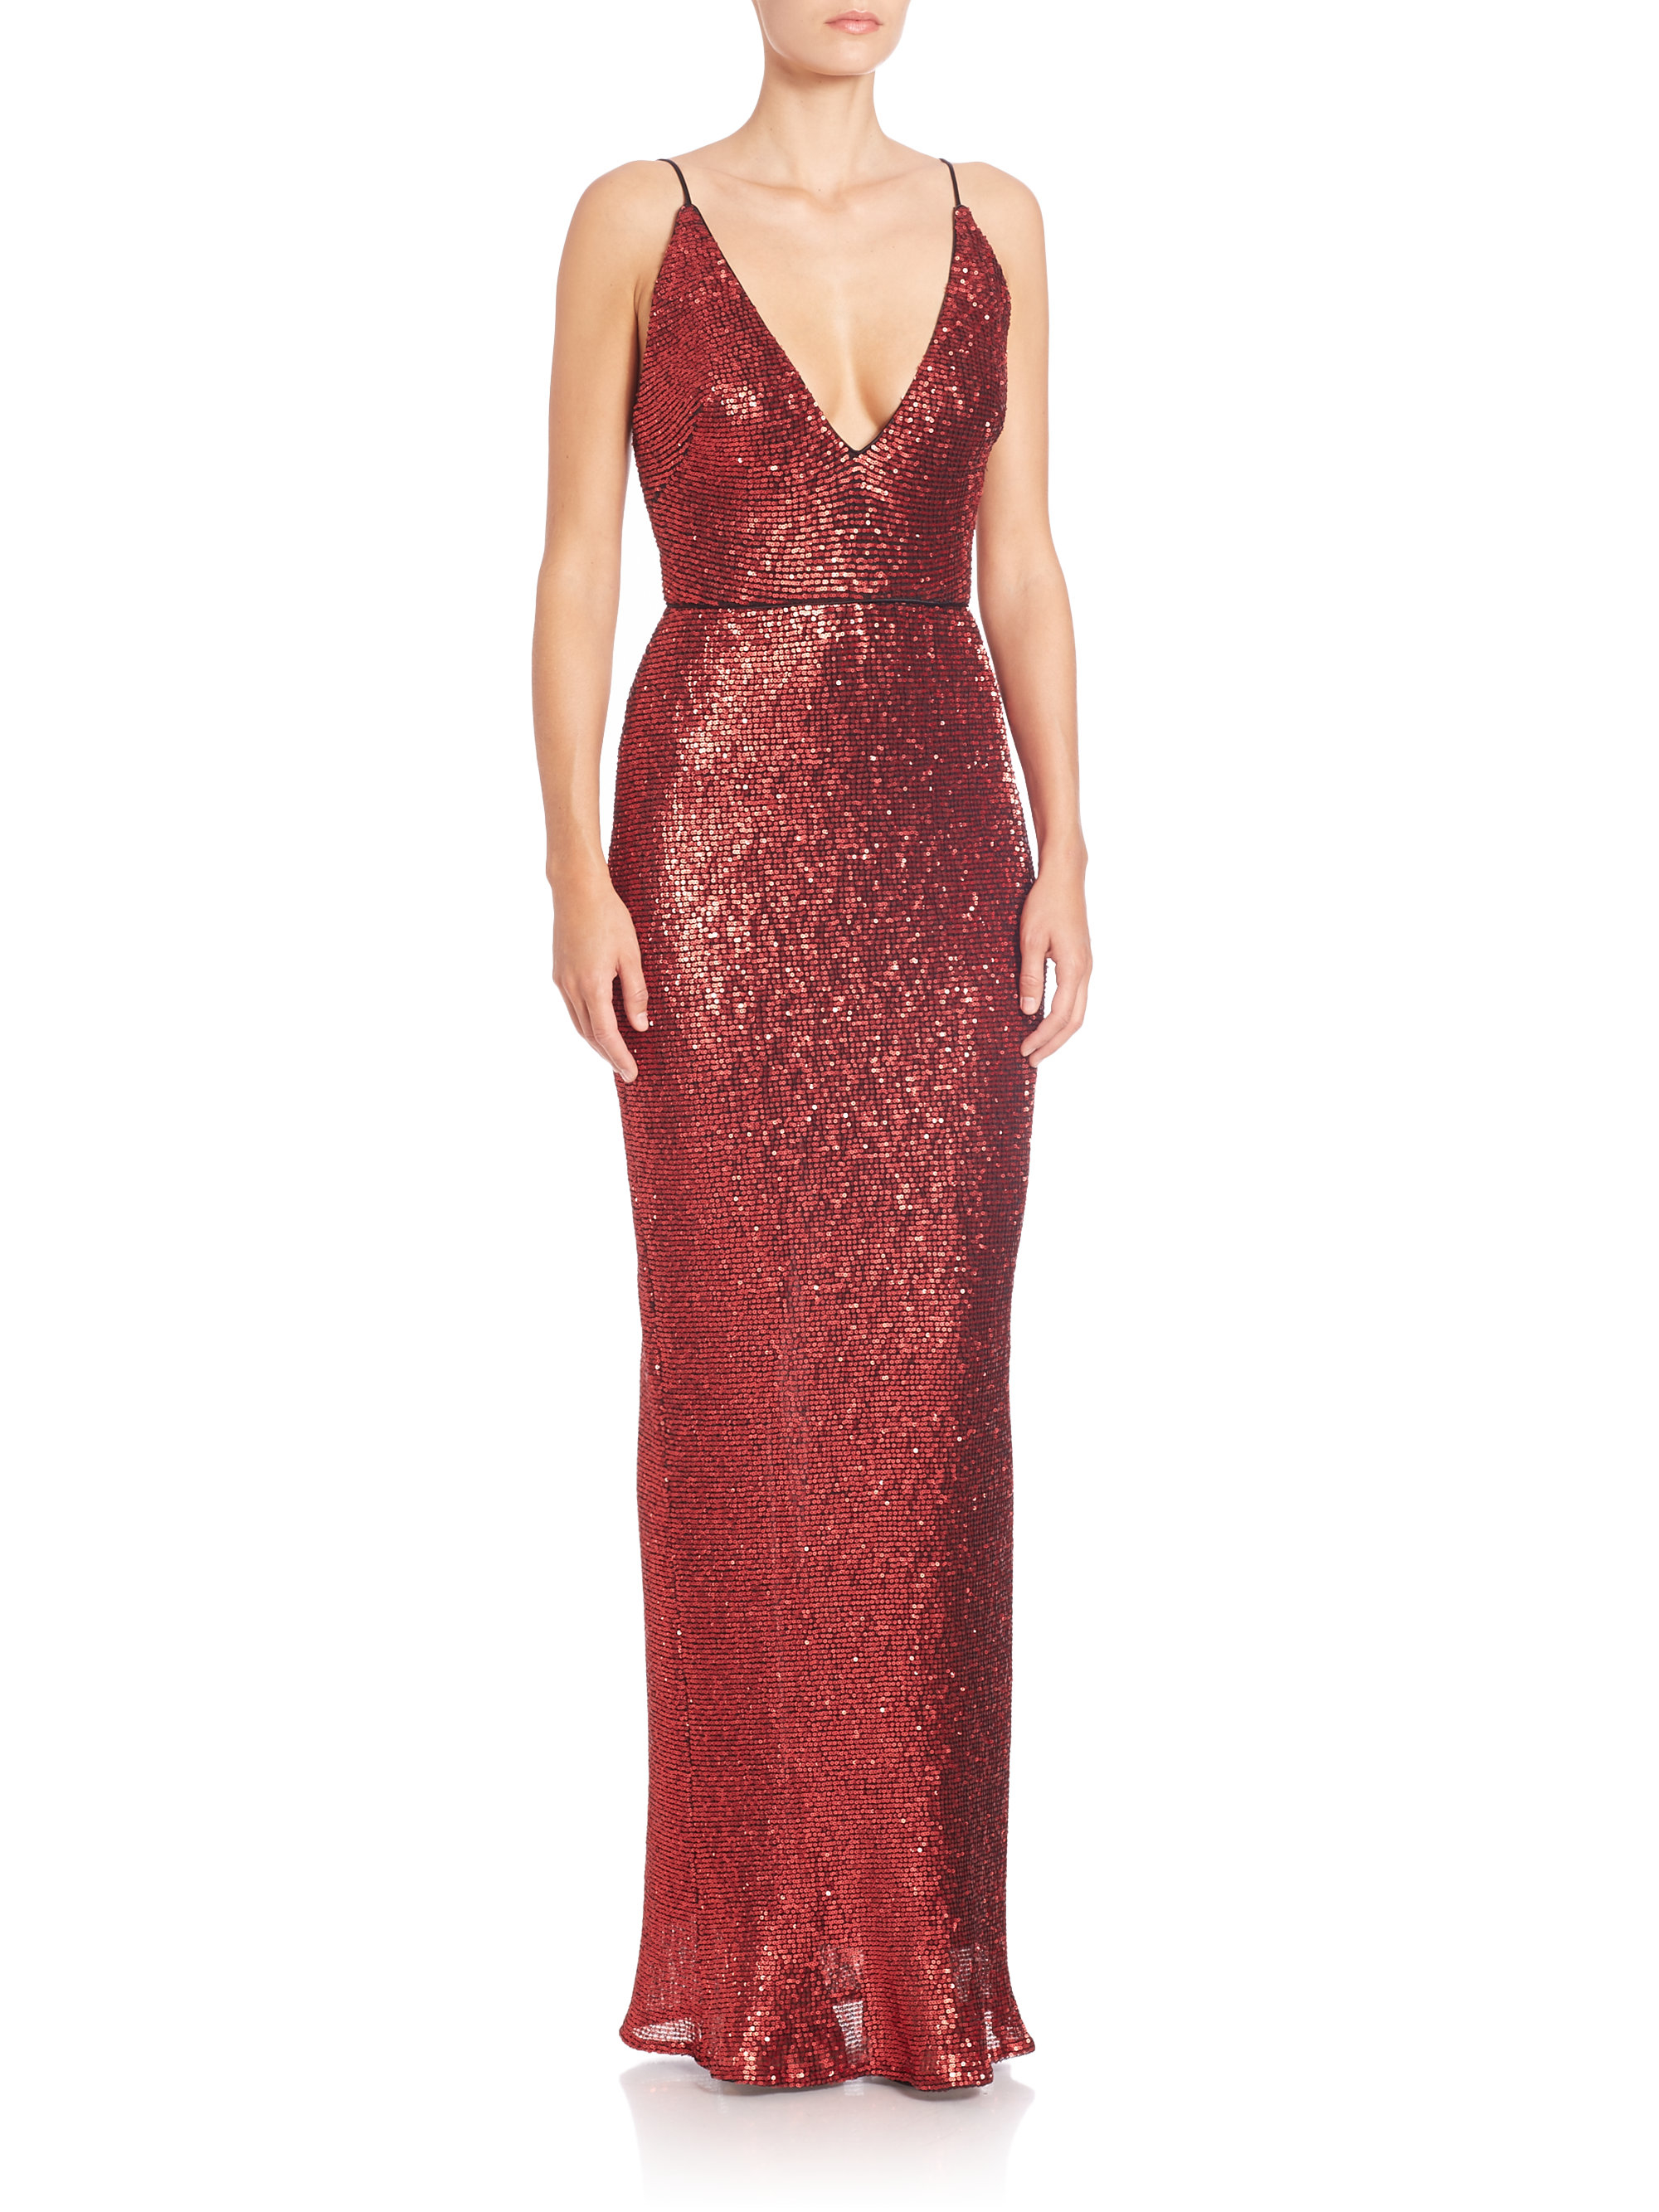 Lyst - Abs By Allen Schwartz Sequined Spaghetti-strap Gown in Red